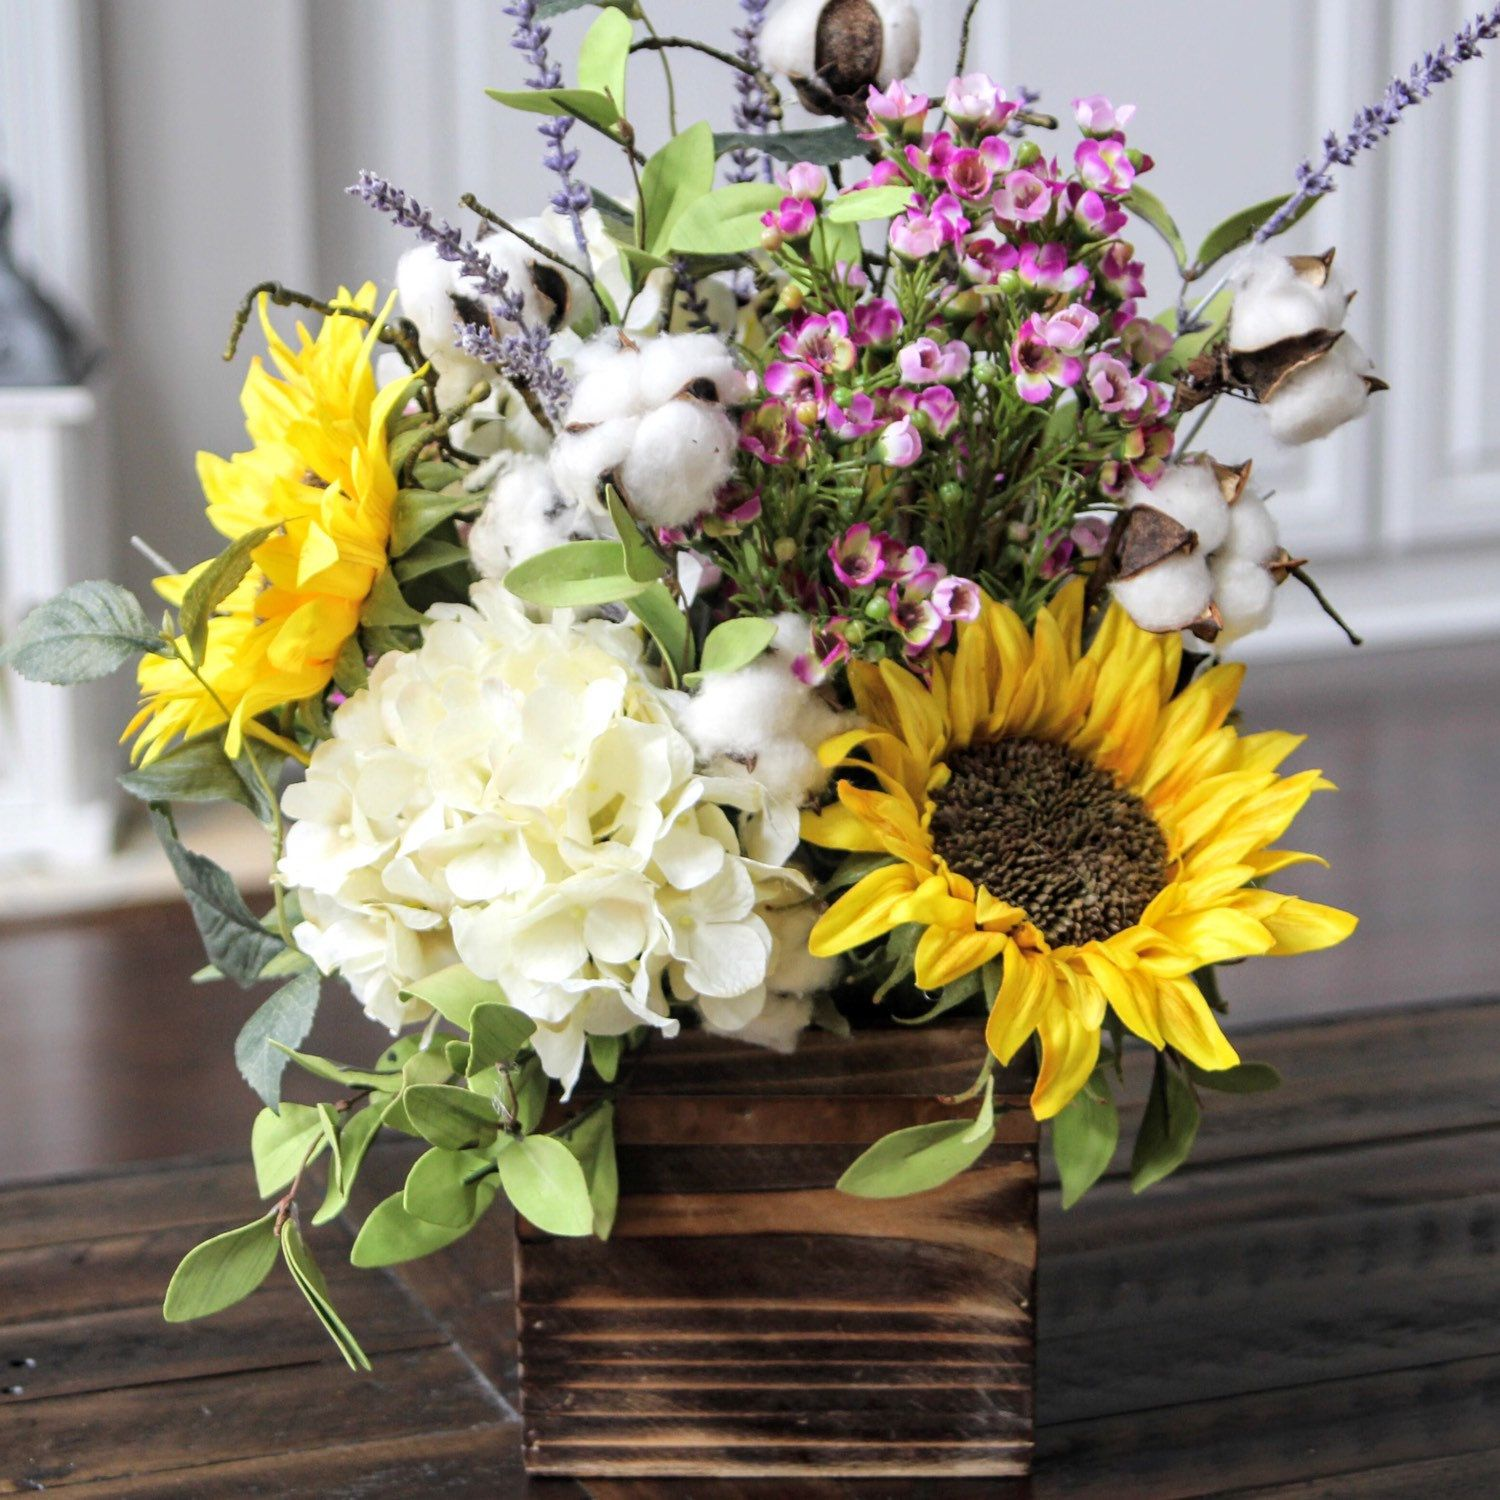 Farmhouse Rustic Decor Summer Arrangement Wood Box Etsy Table Flower Arrangements Sunflower Arrangements Flower Arrangements